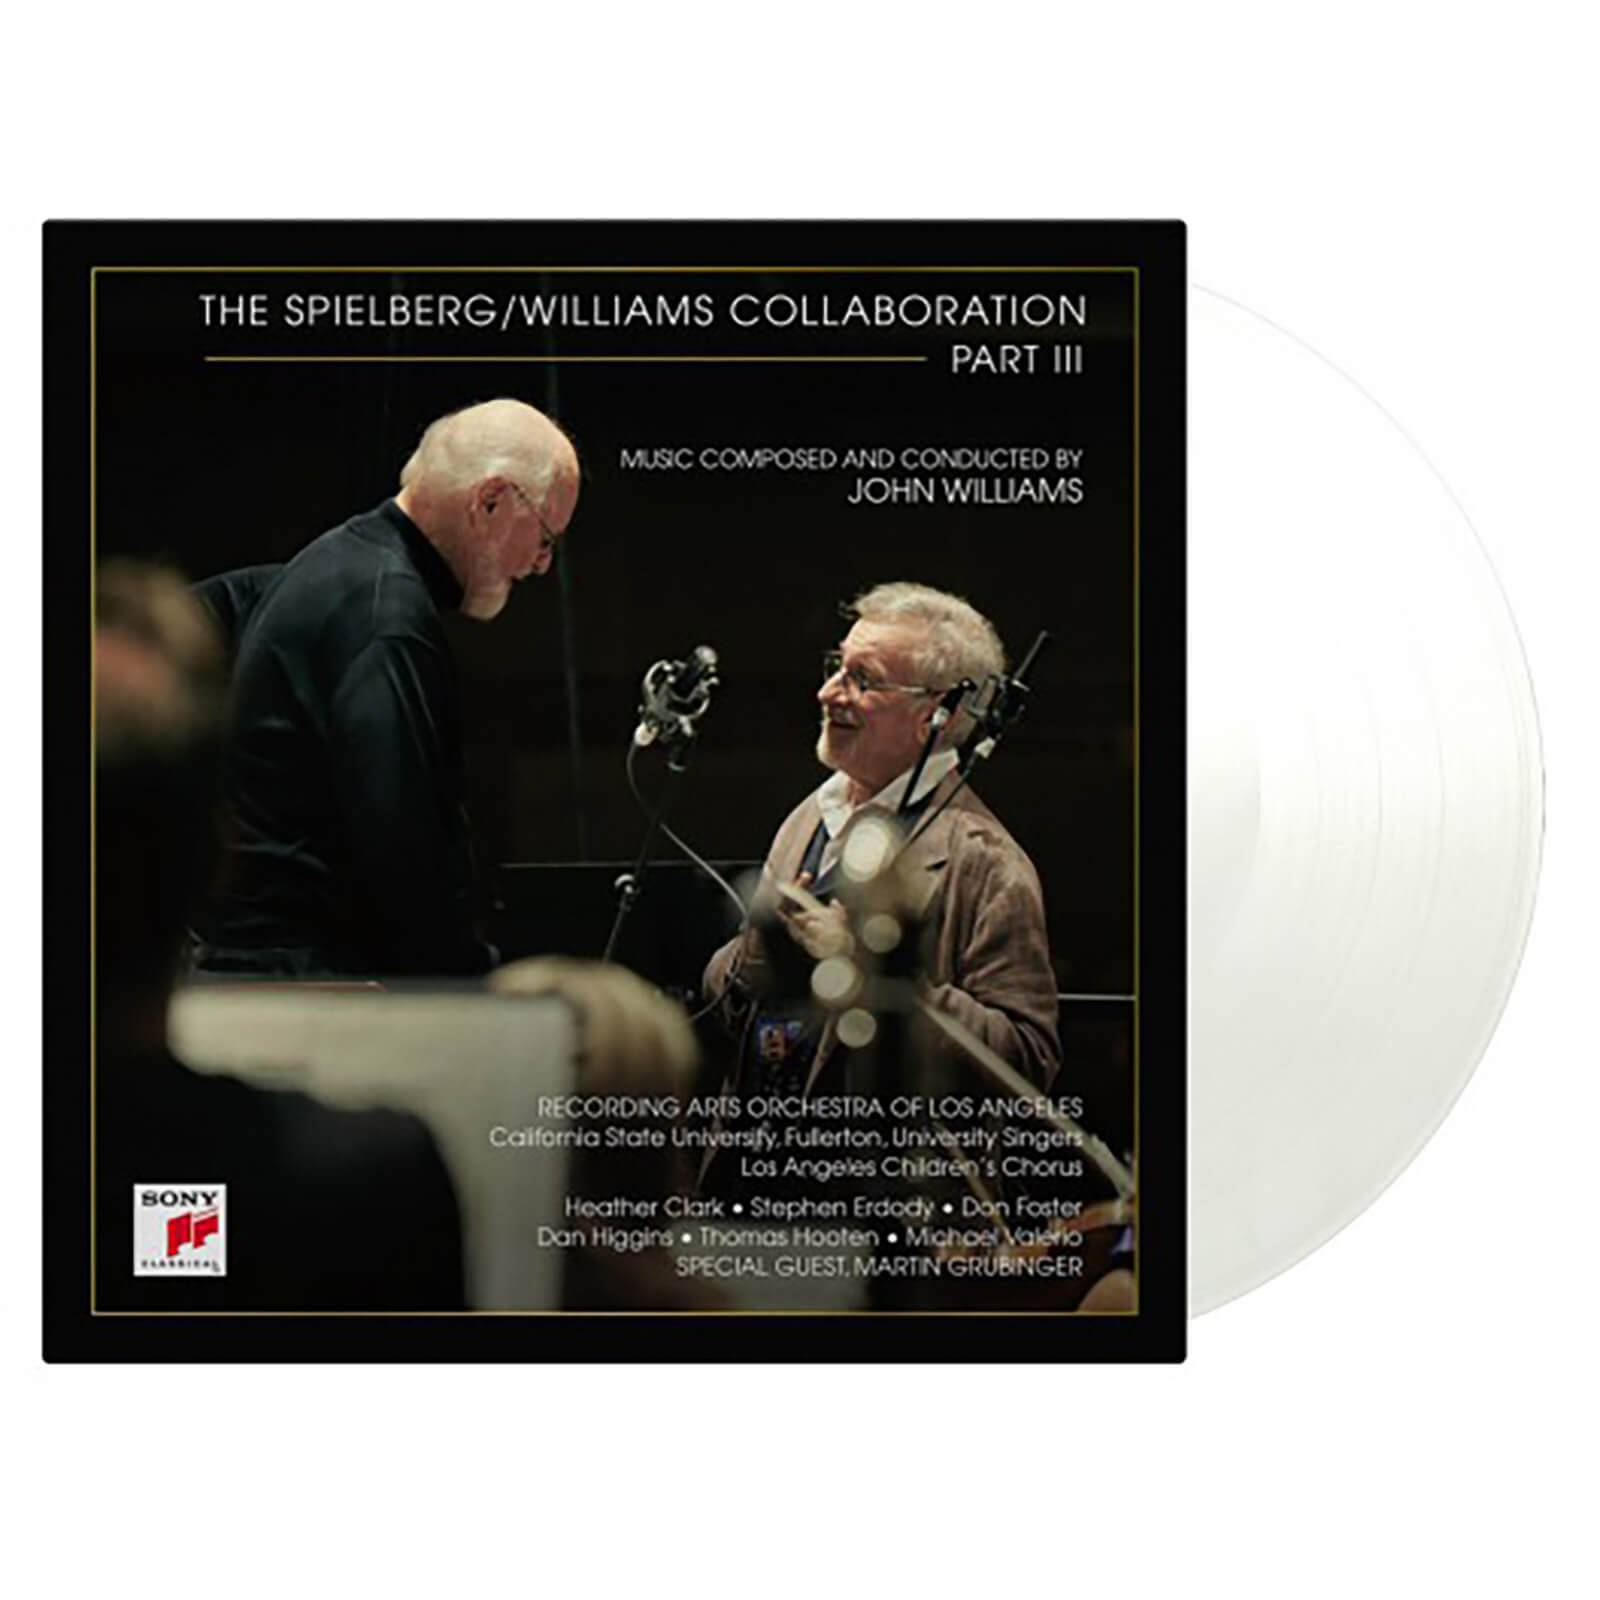 Music On Vinyl: At The Movies John Williams - The Spielberg/Williams Collaboration Part III [2LP] (LIMITED TRANSPARENT 180 Gram Audiophile Vinyl, gatefold, PVC sleeve, numbered to 1500)